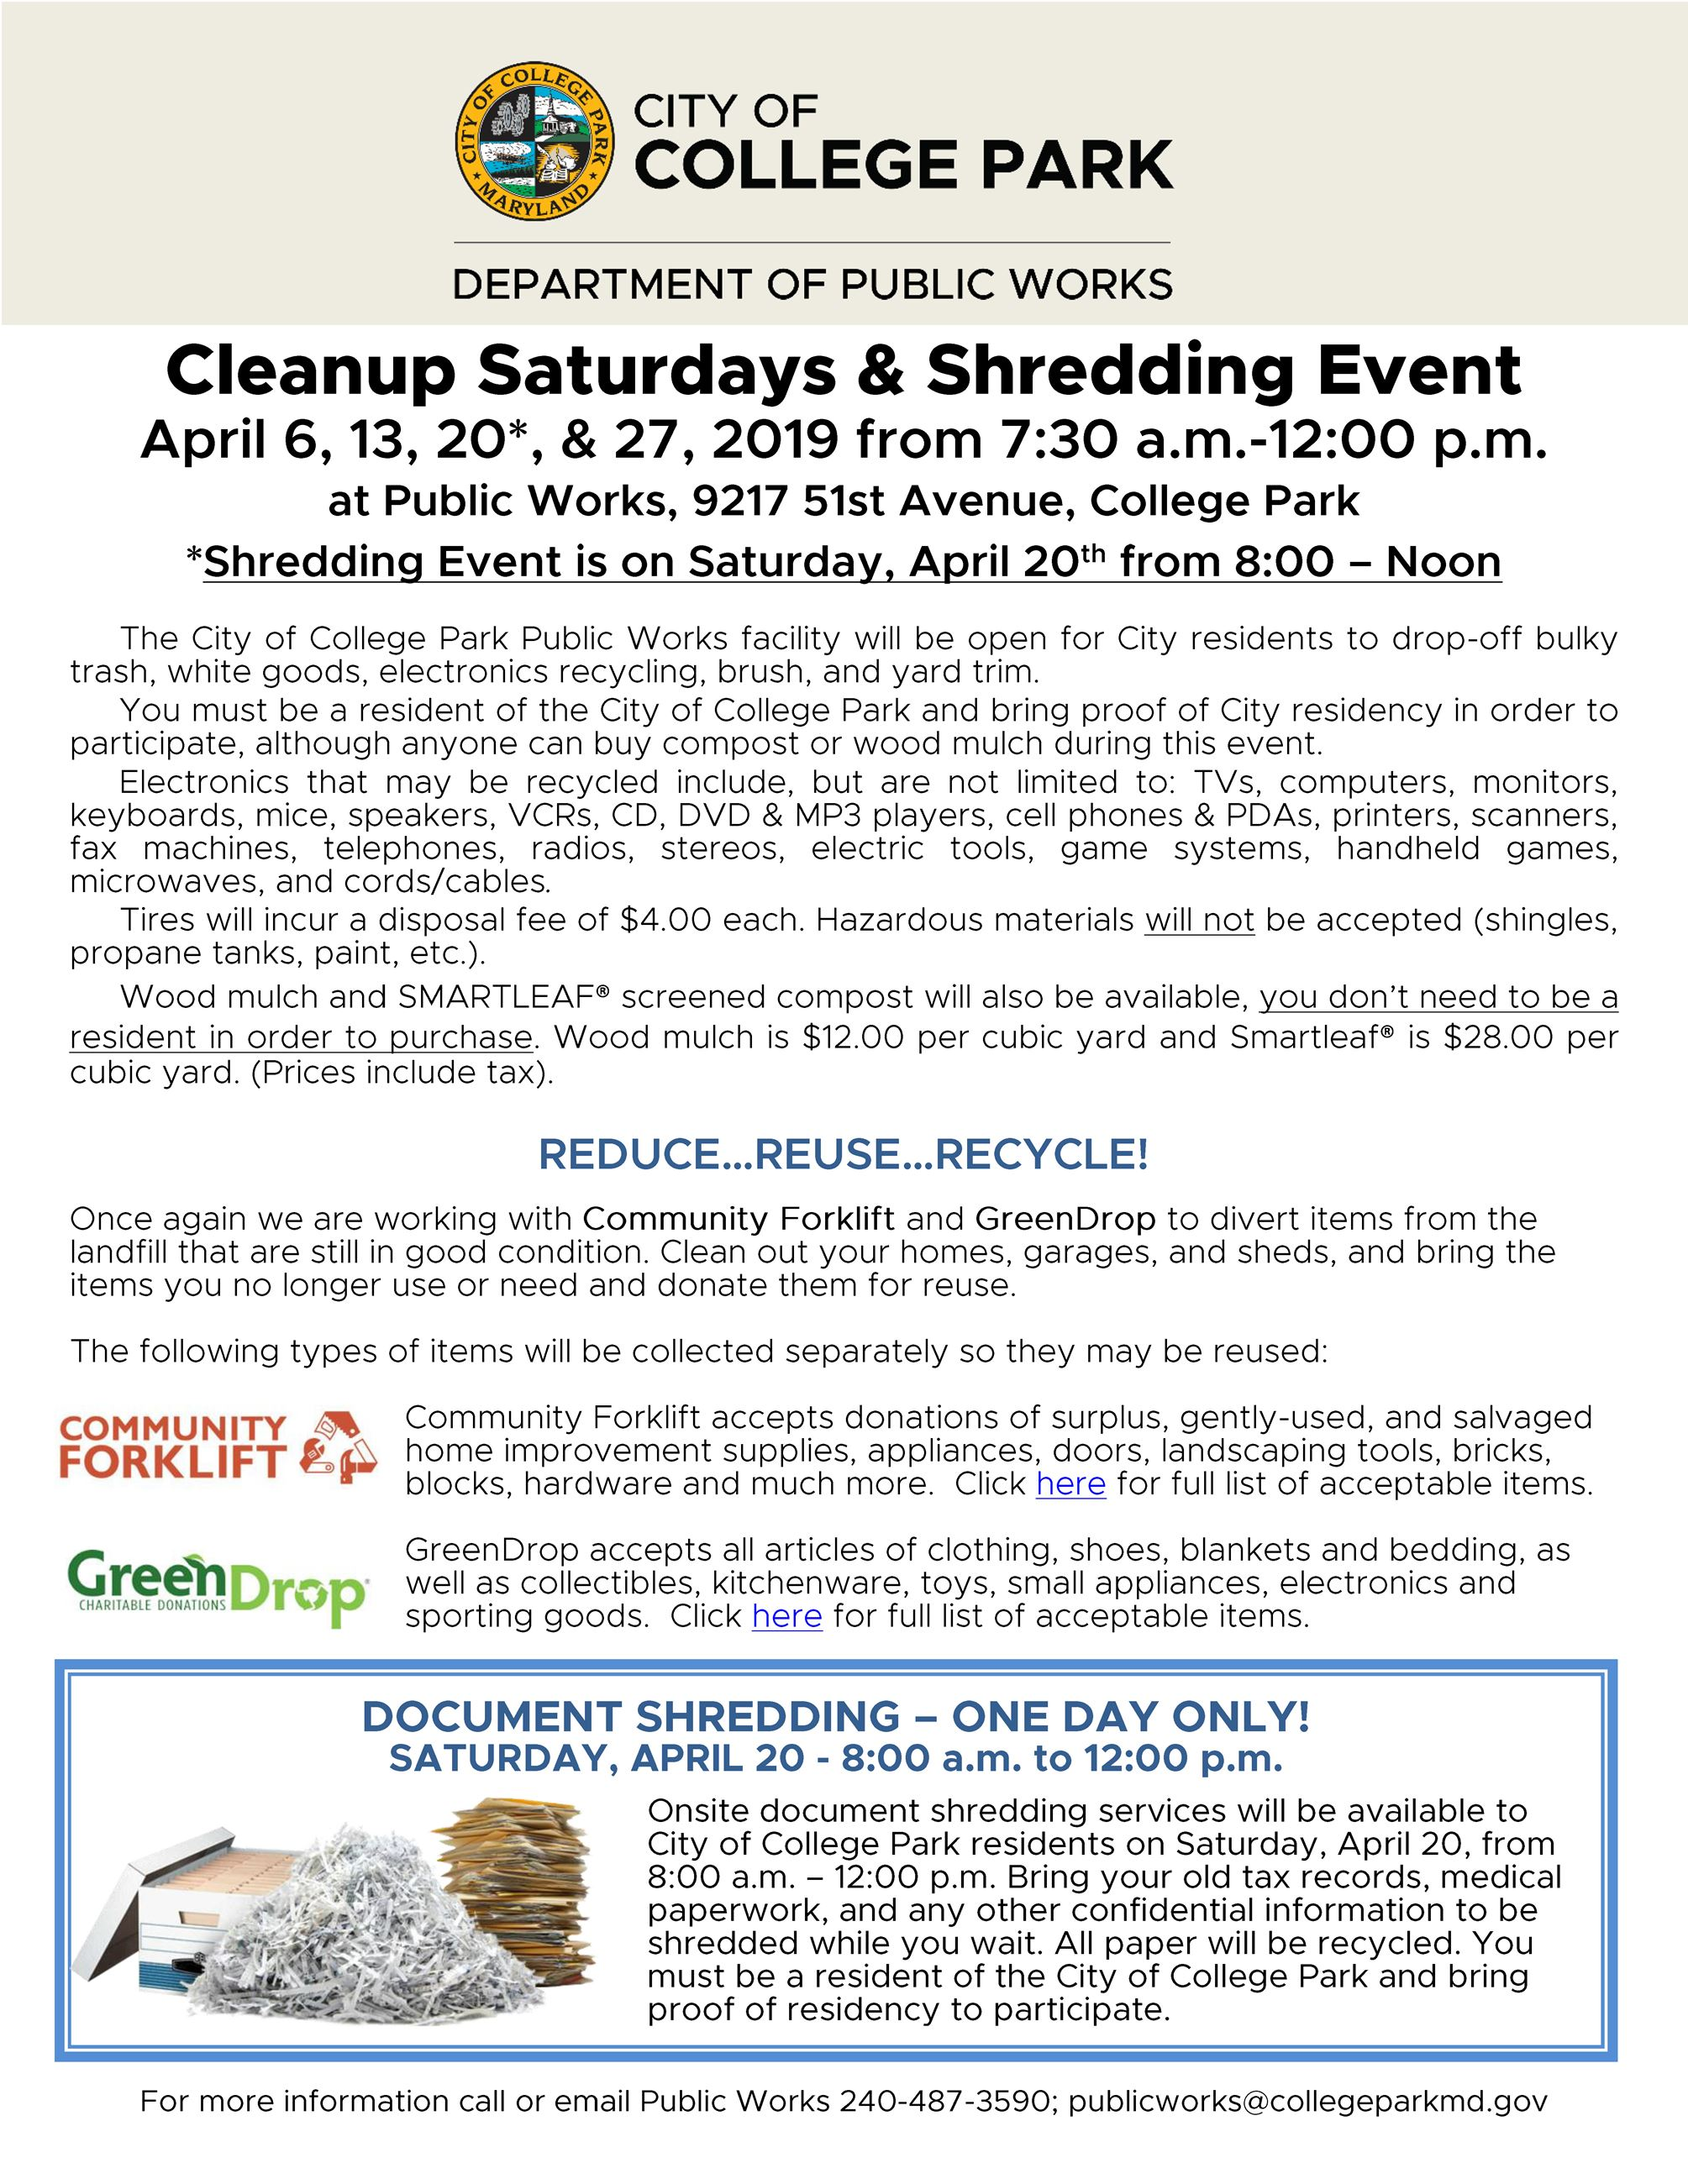 Clean up event Spring 2019 advertisement